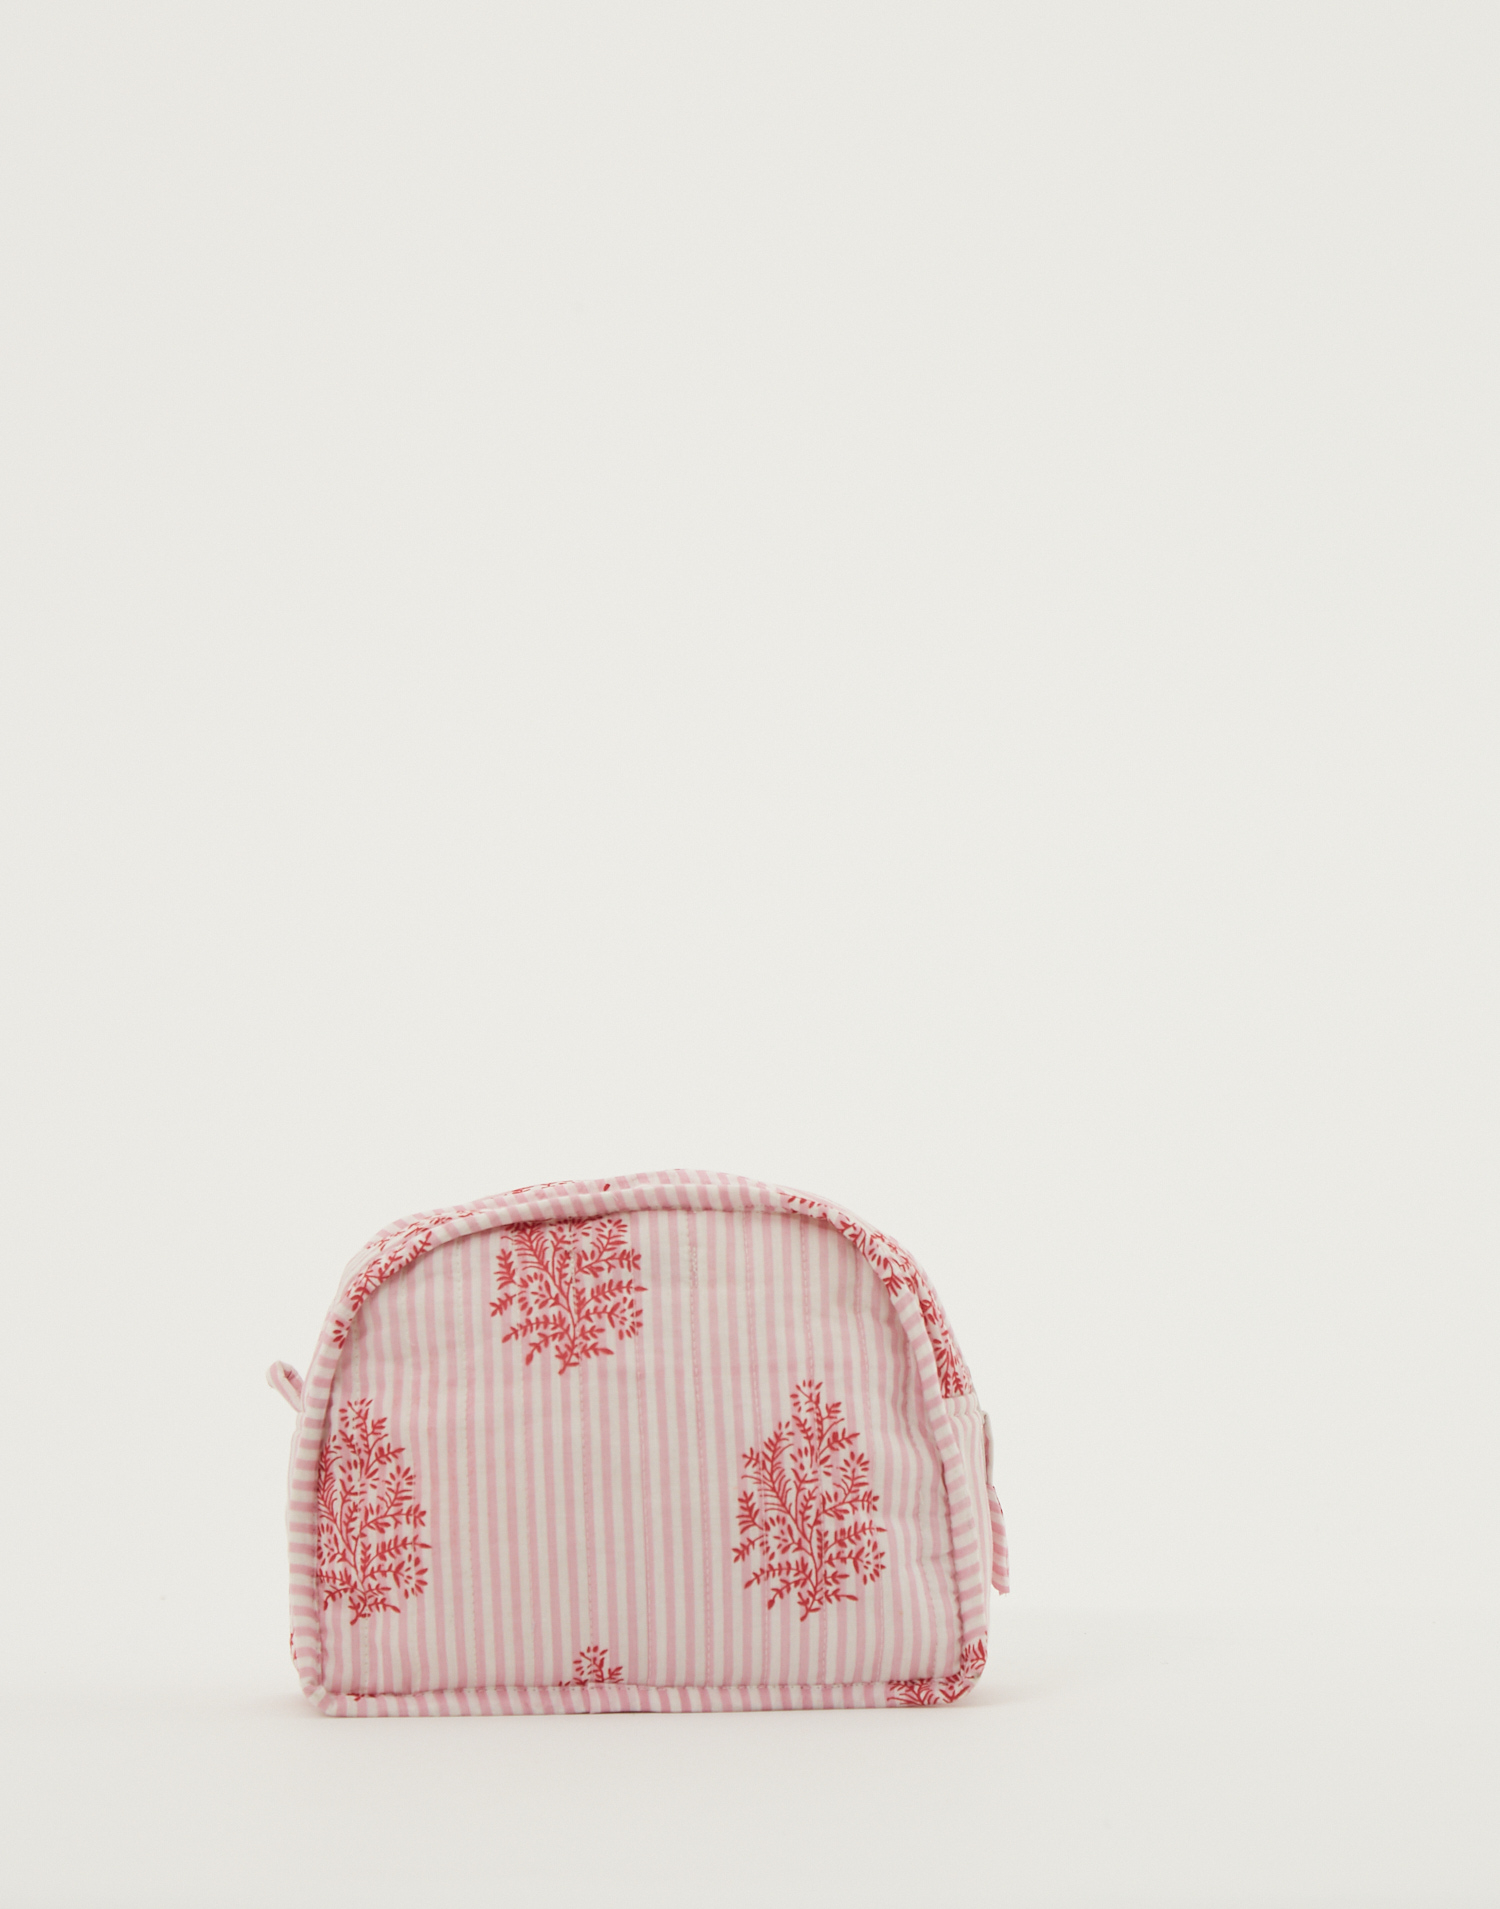 Small pink case